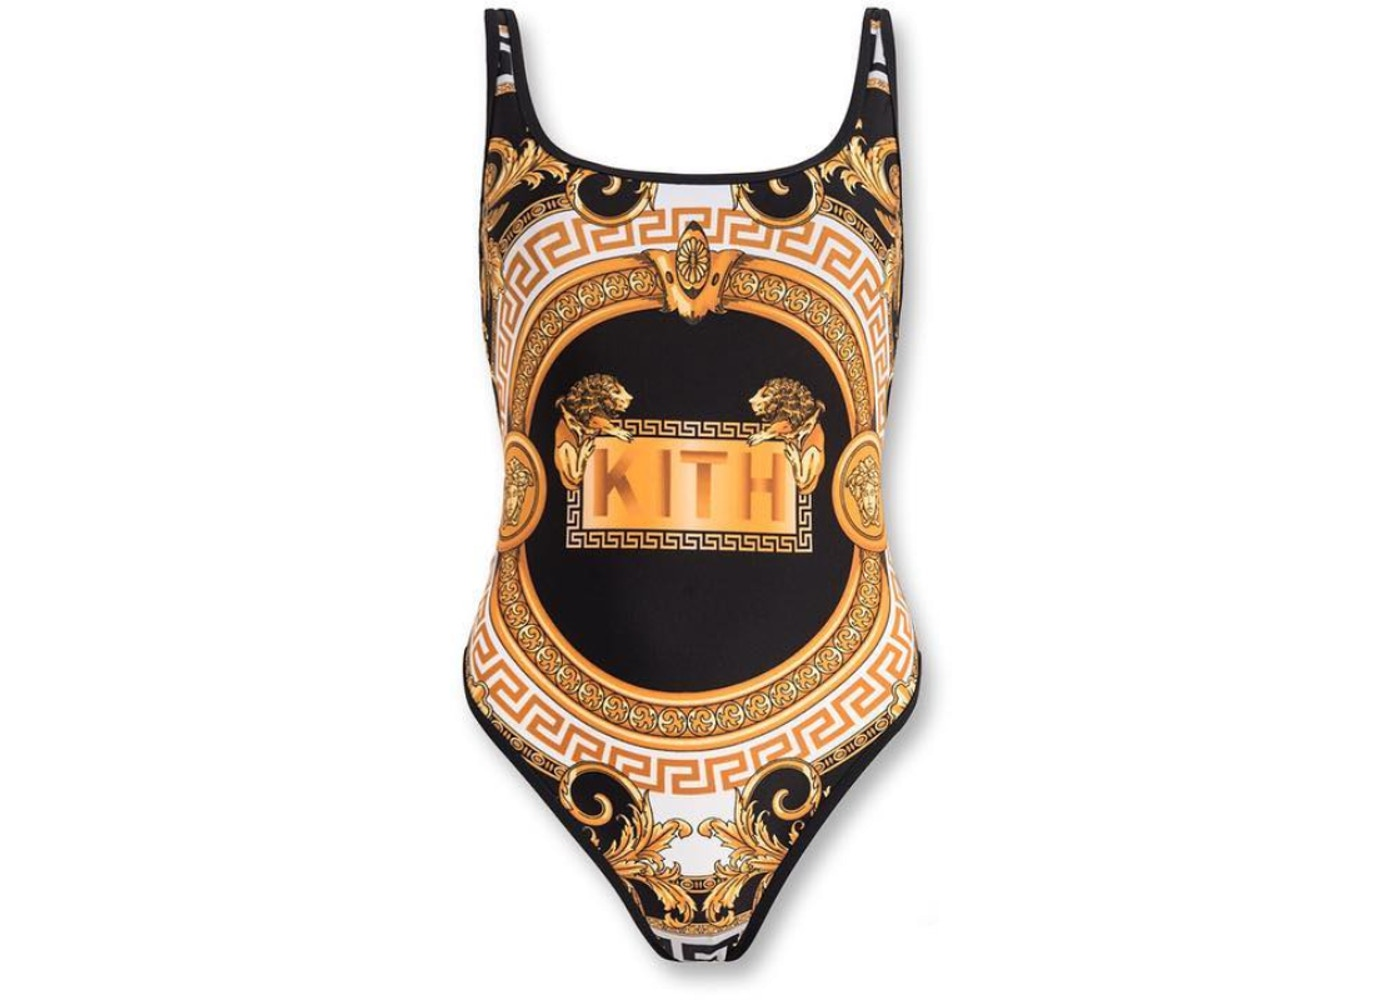 43436cd902 Kith x Versace Women's One Piece Swimsuit Gold - SS19